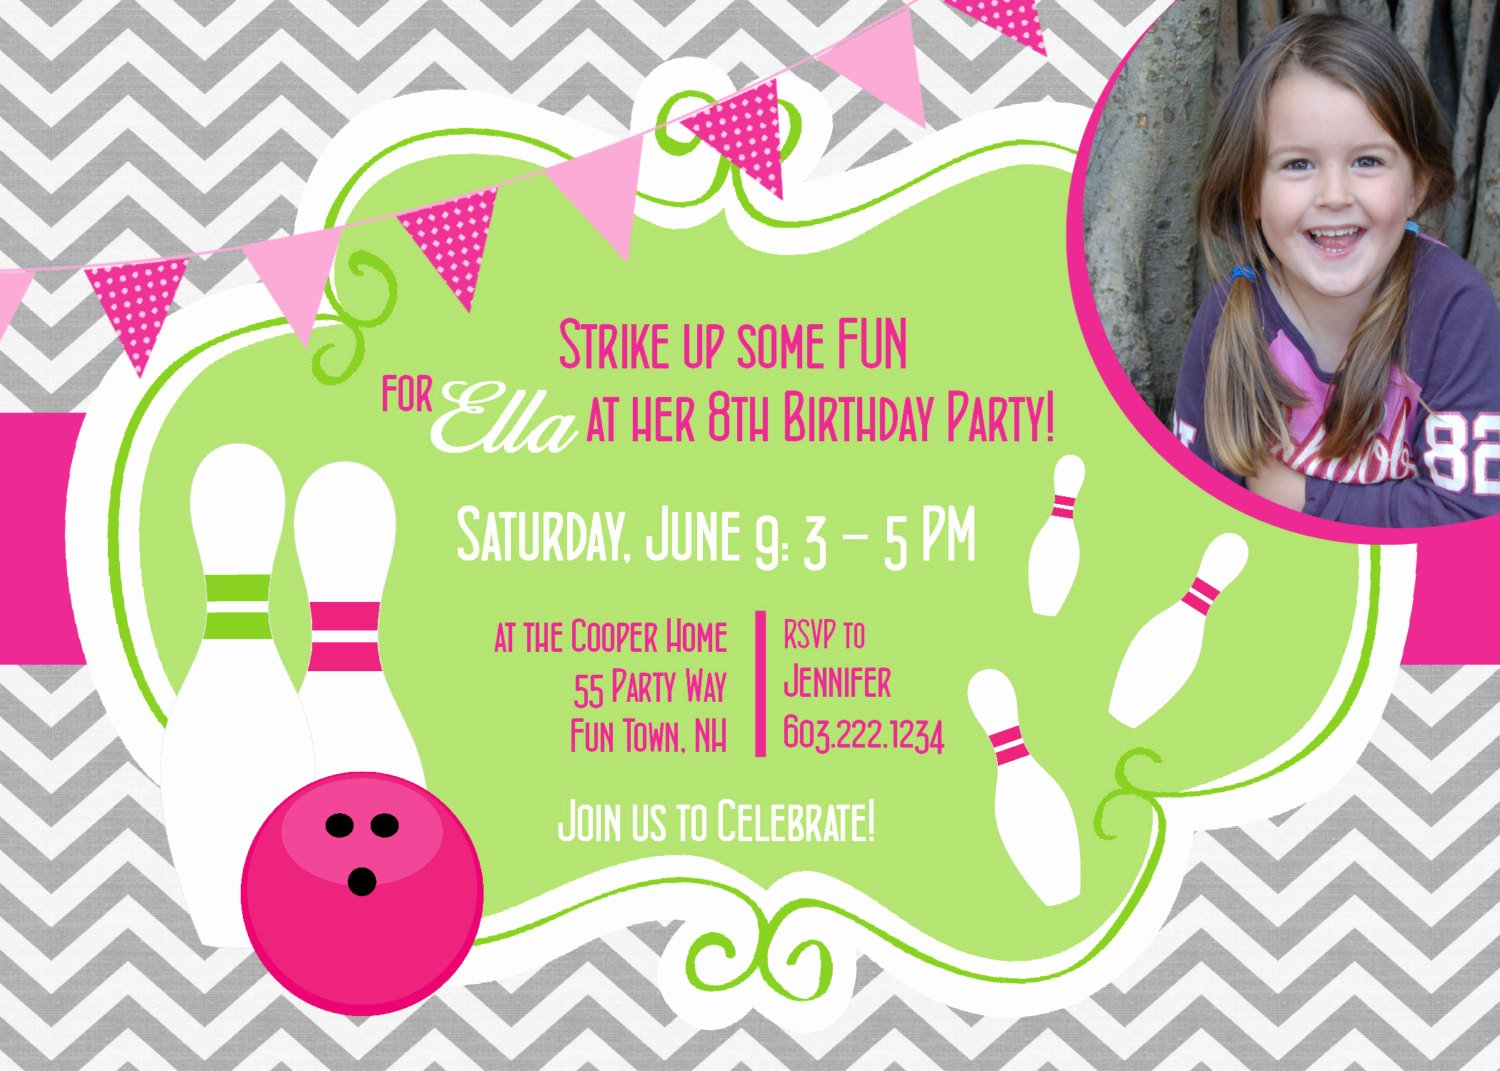 Bowling Party Invitation Templates Awesome Free Bowling Birthday Party Invitations Free Invitation